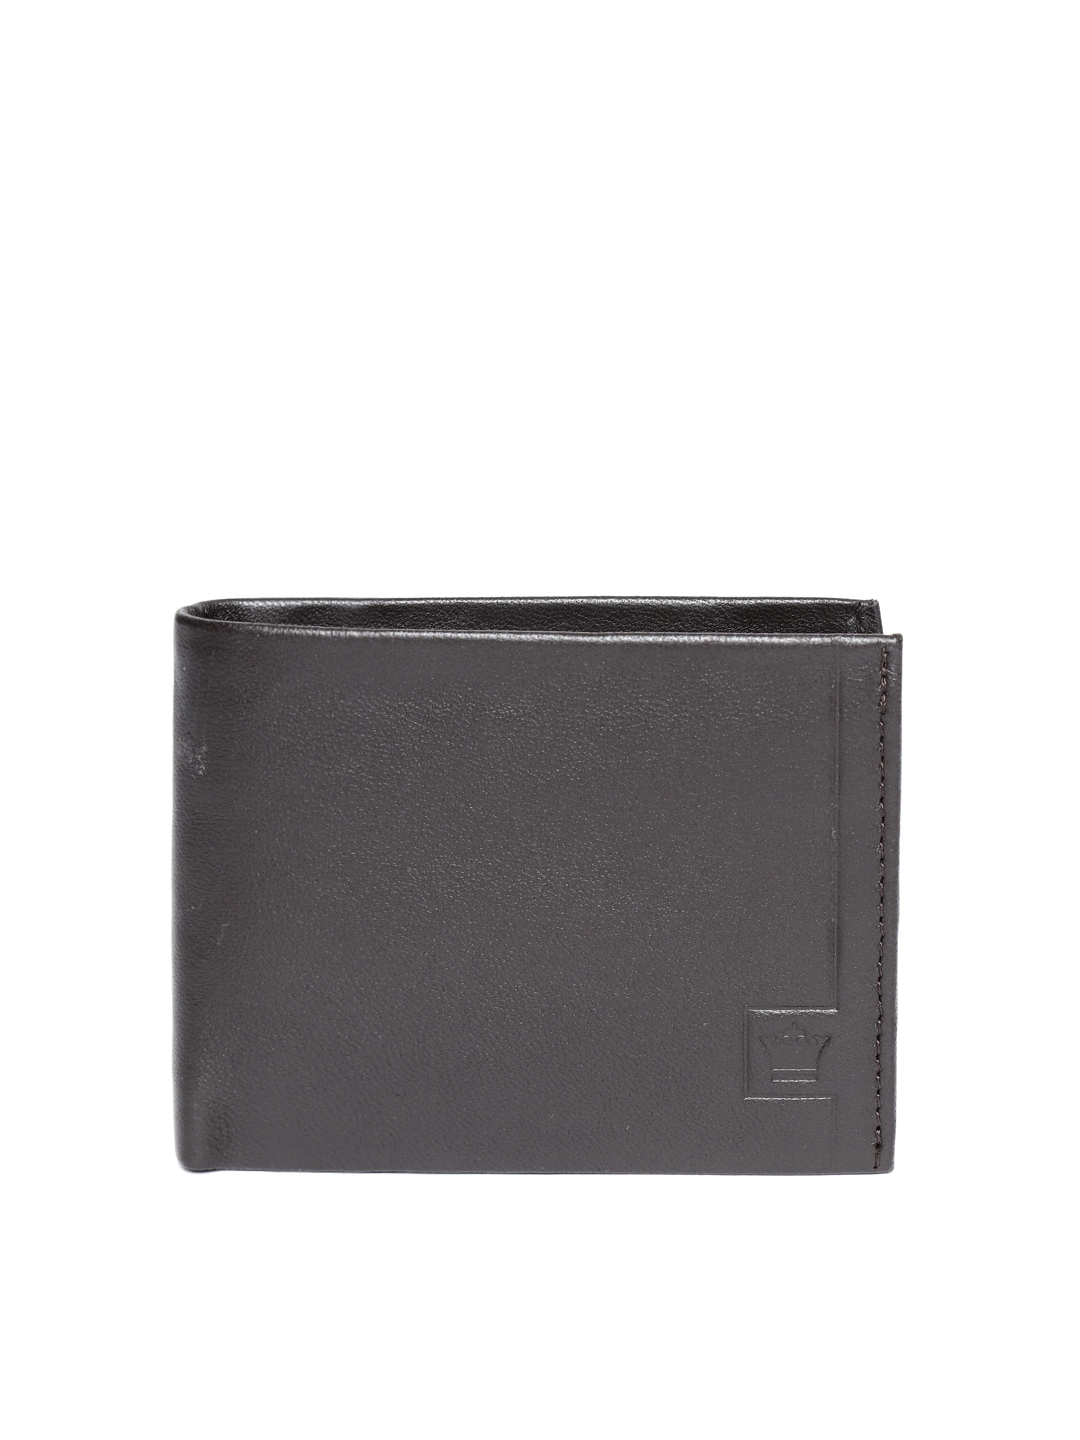 f6c5a99c4 Men Belts Wallets - Buy Men Belts Wallets online in India